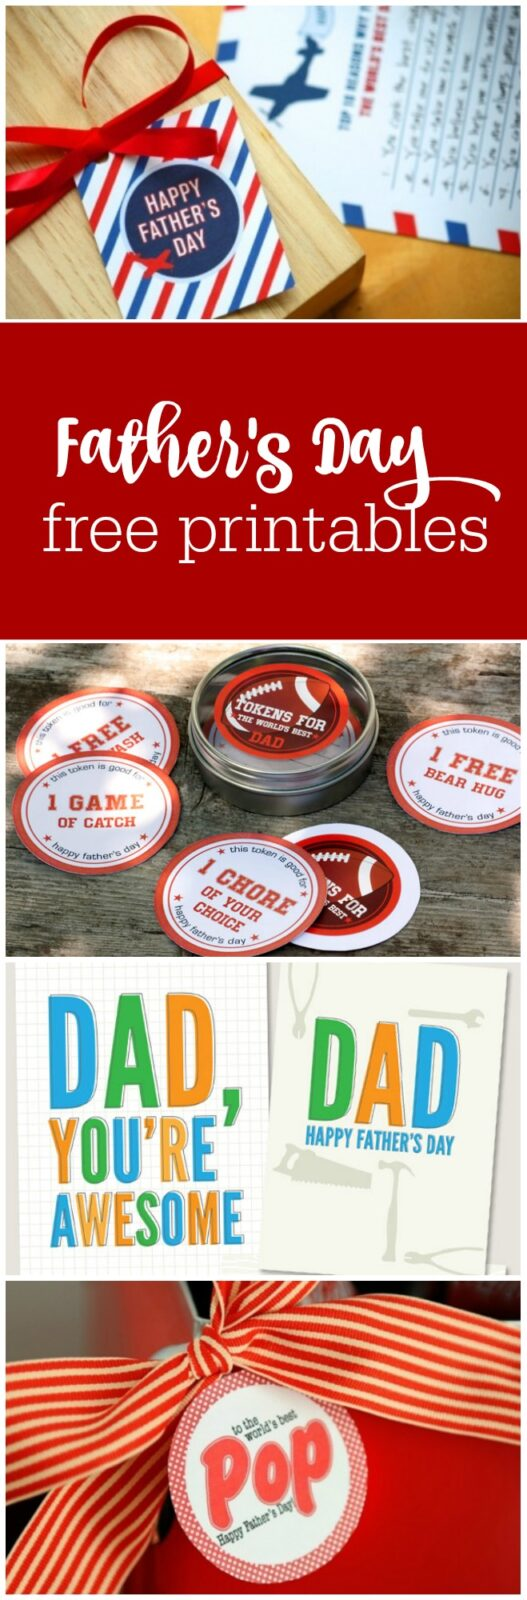 Free printables for Father's Day curated by The Party Teacher